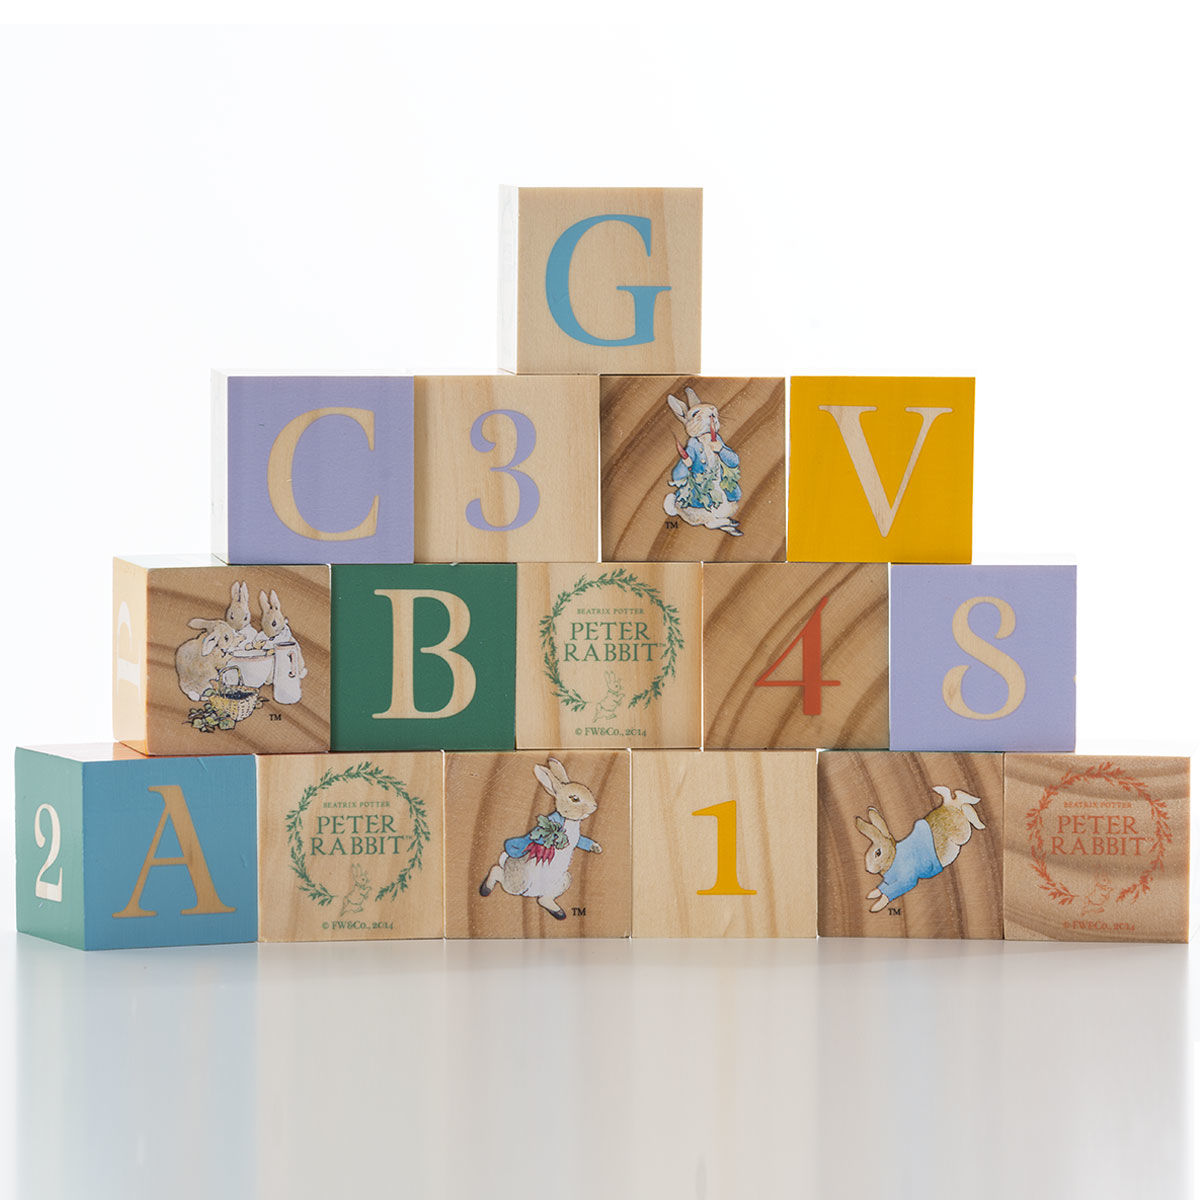 Peter Rabbit Peter Rabbit Wooden Blocks